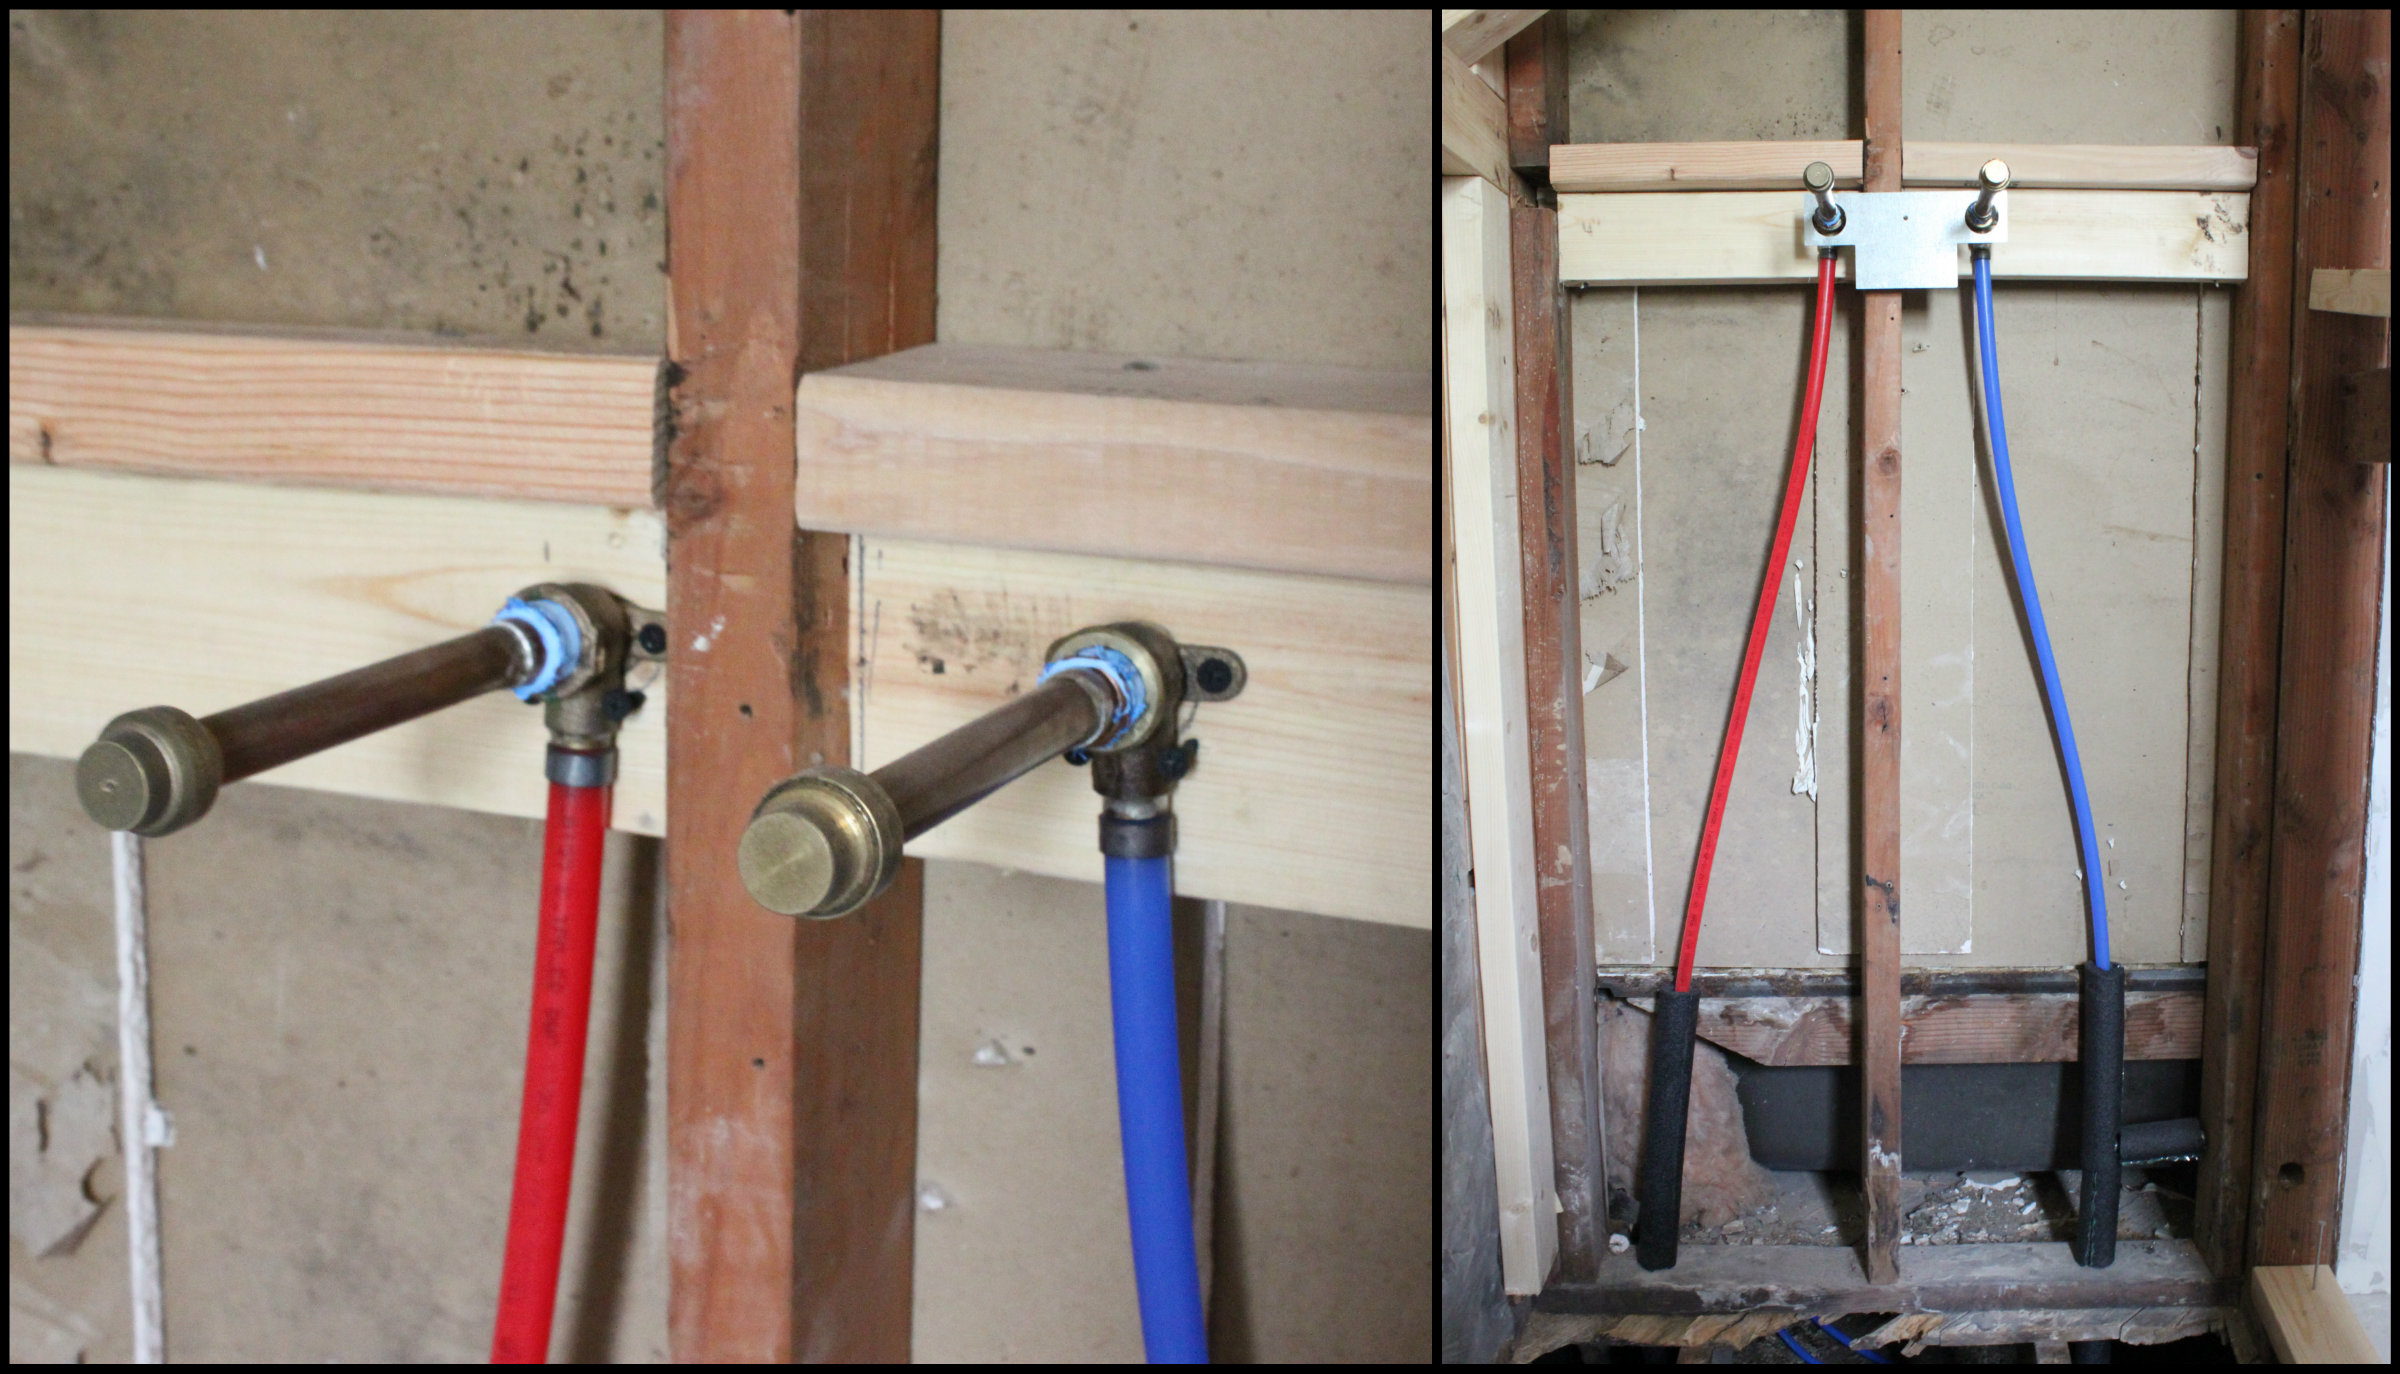 pex plumbing diagram bathroom wiring for three way switch one light sink dreamy person lovely